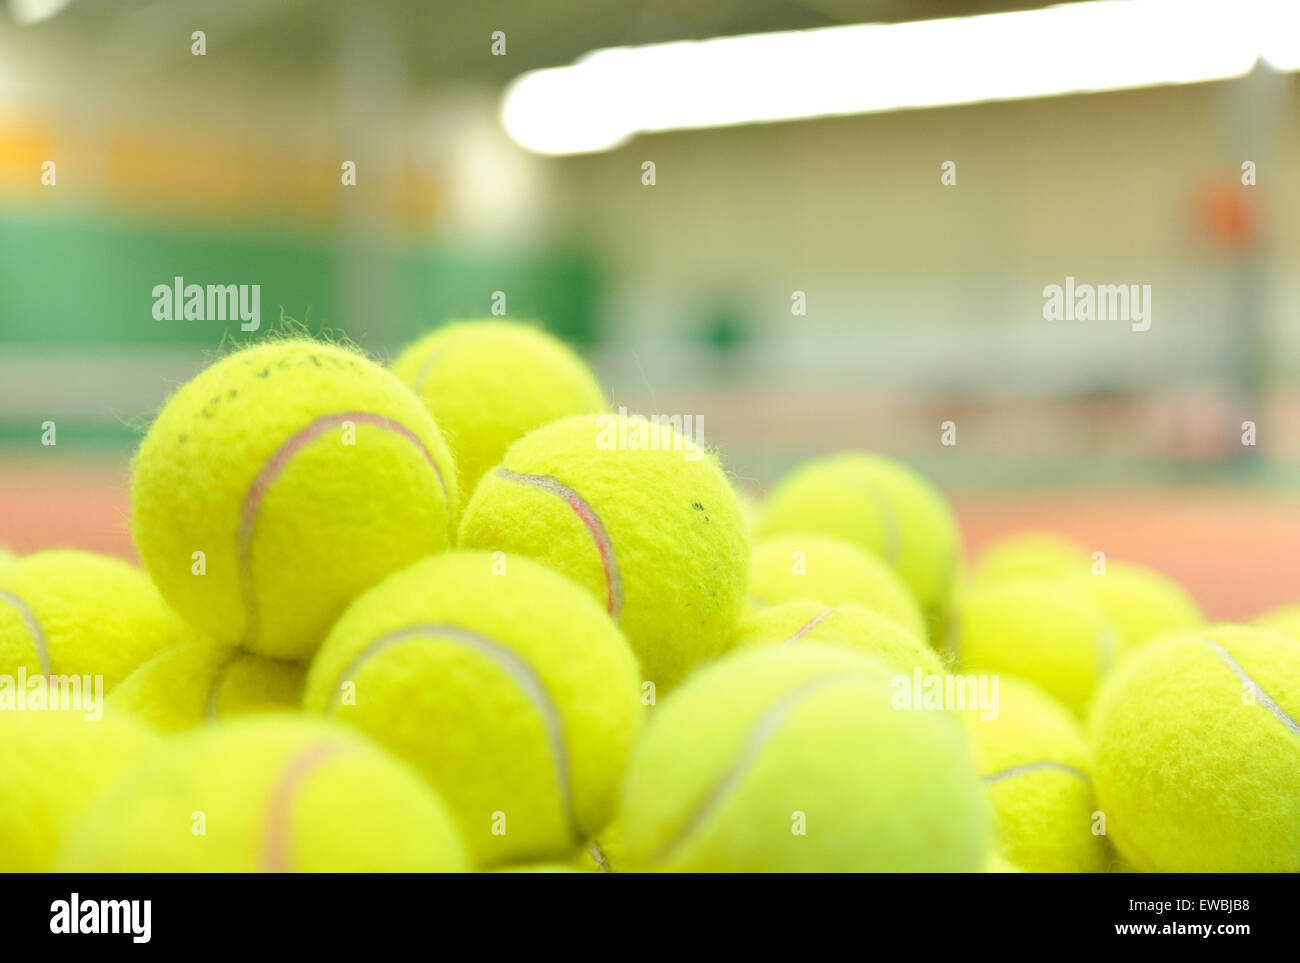 Pile of tennis balls in a basket - Stock Image